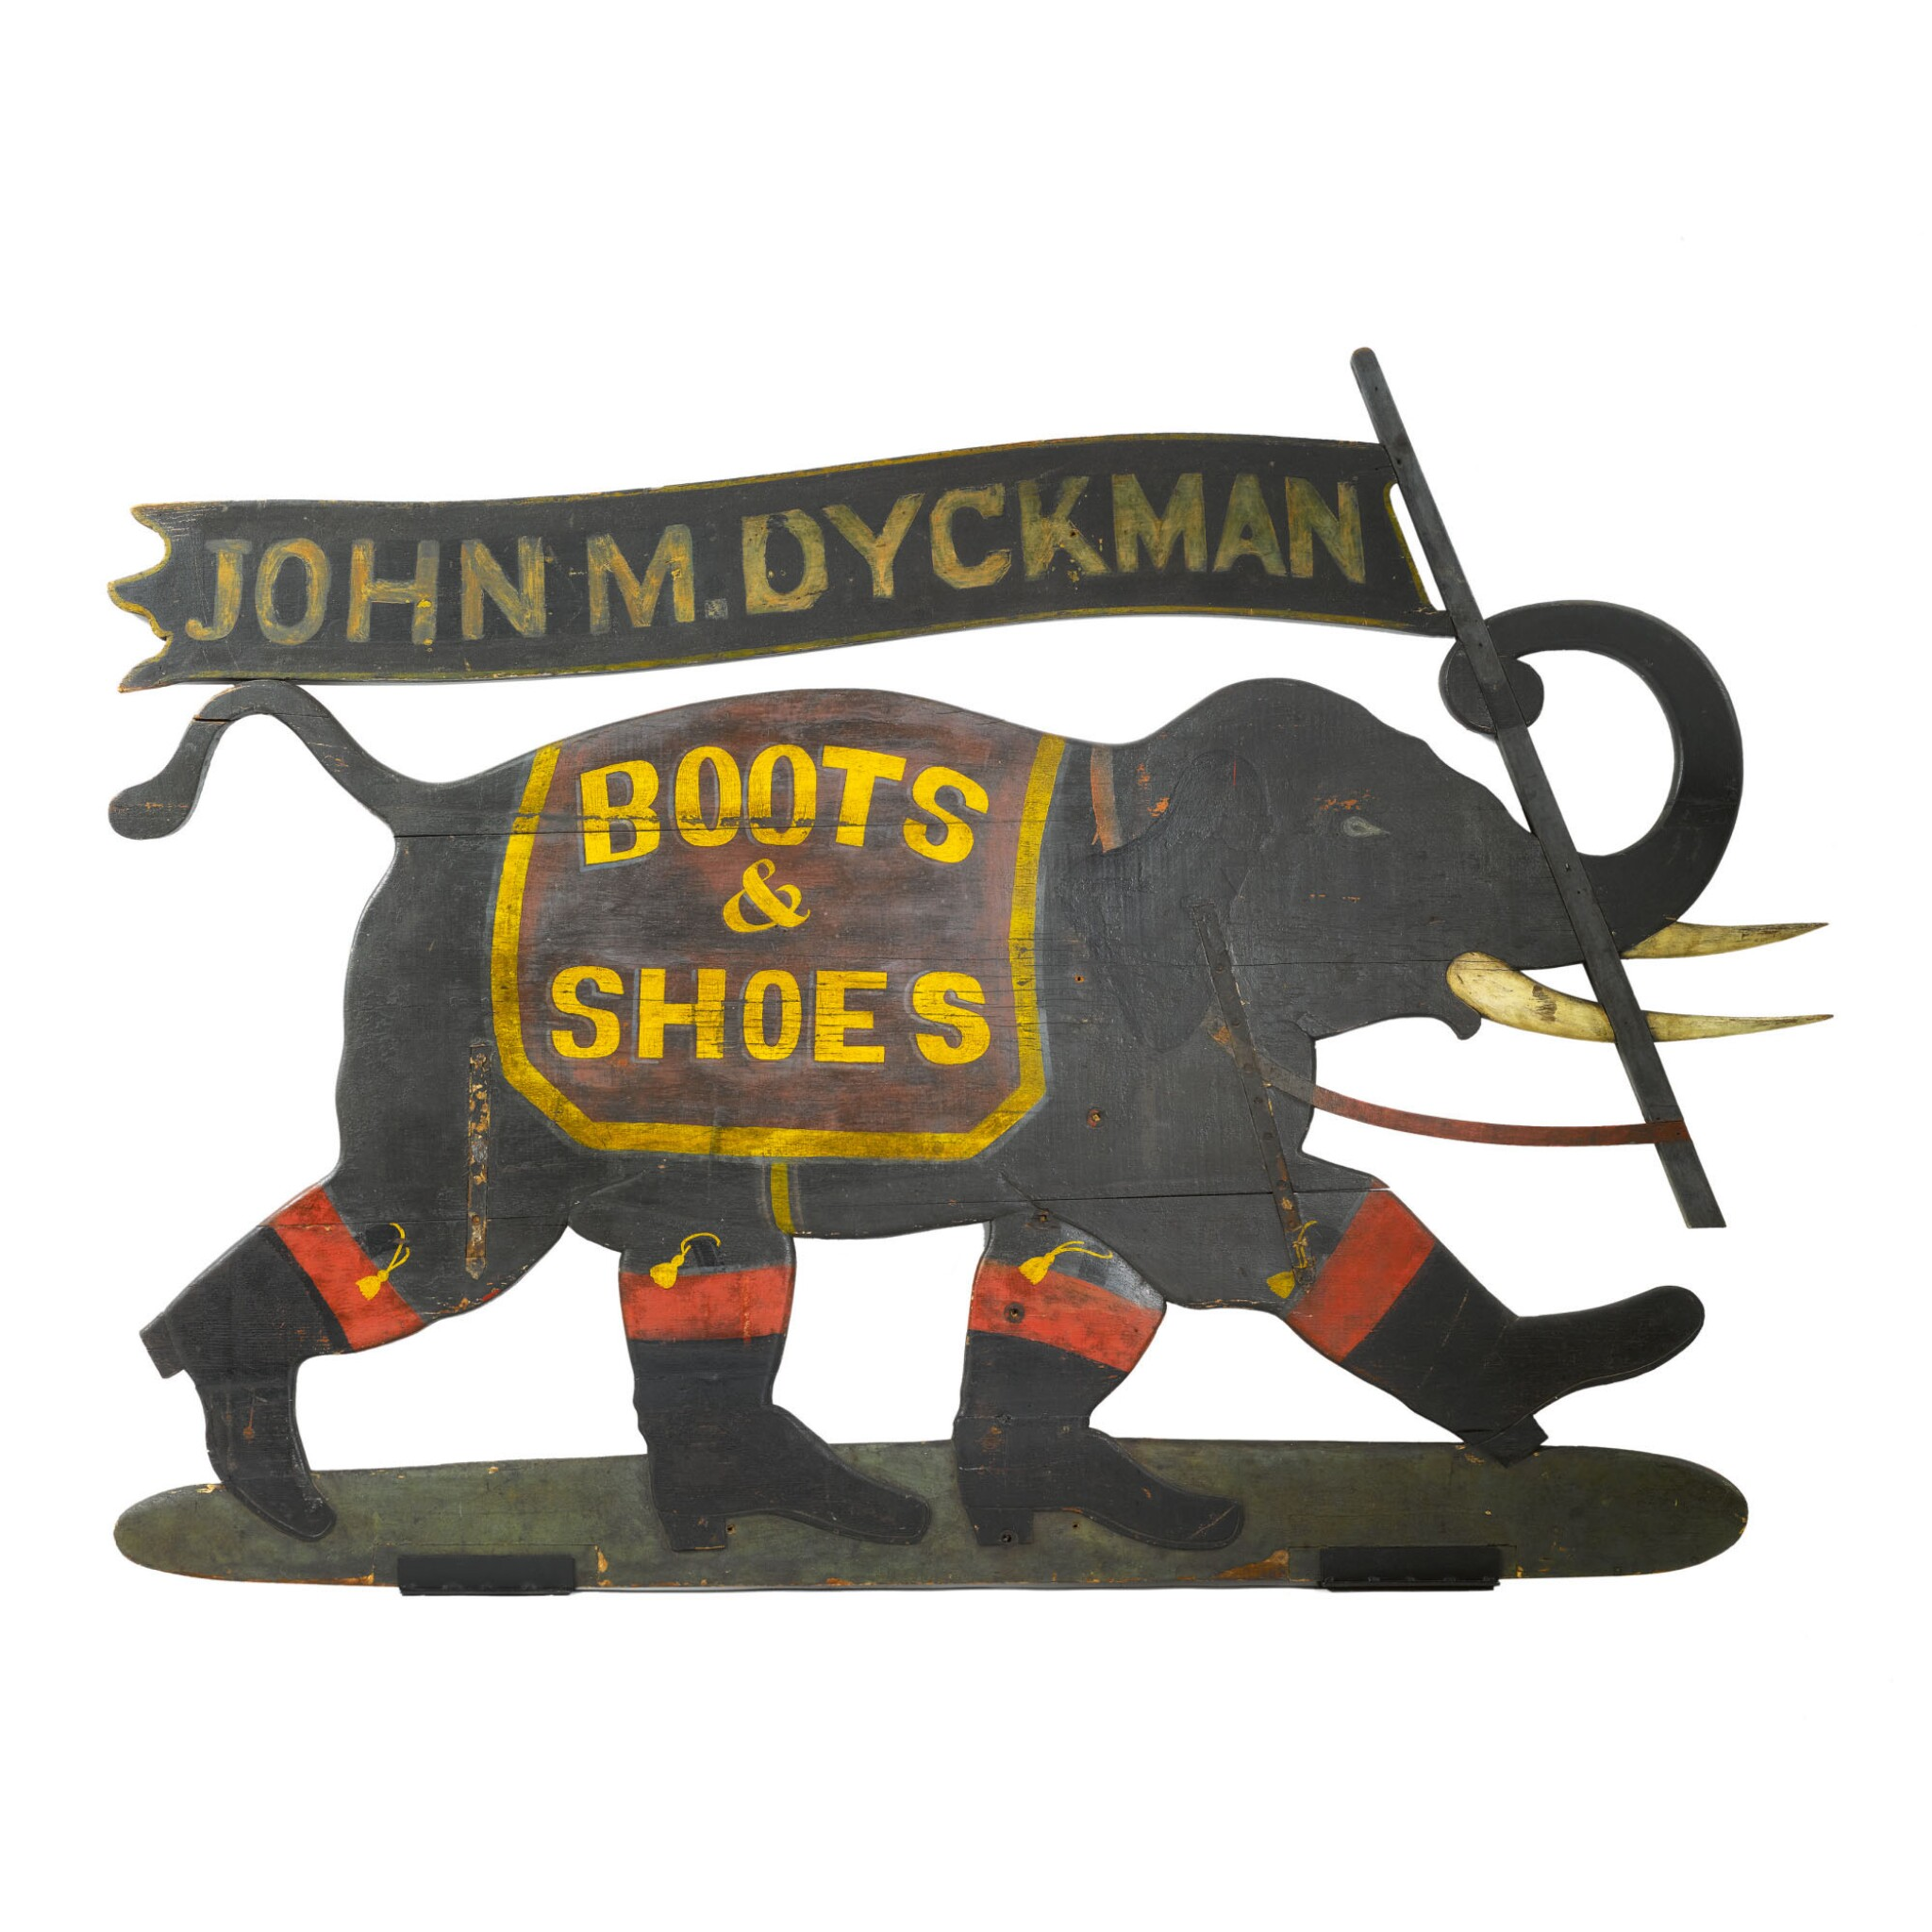 View full screen - View 1 of Lot 89. EXCEPTIONAL POLYCHROME PAINT-DECORATED WOODEN 'ELEPHANT WALKING' TRADE SIGN, PEEKSKILL, NEW YORK, CIRCA 1882-1885.